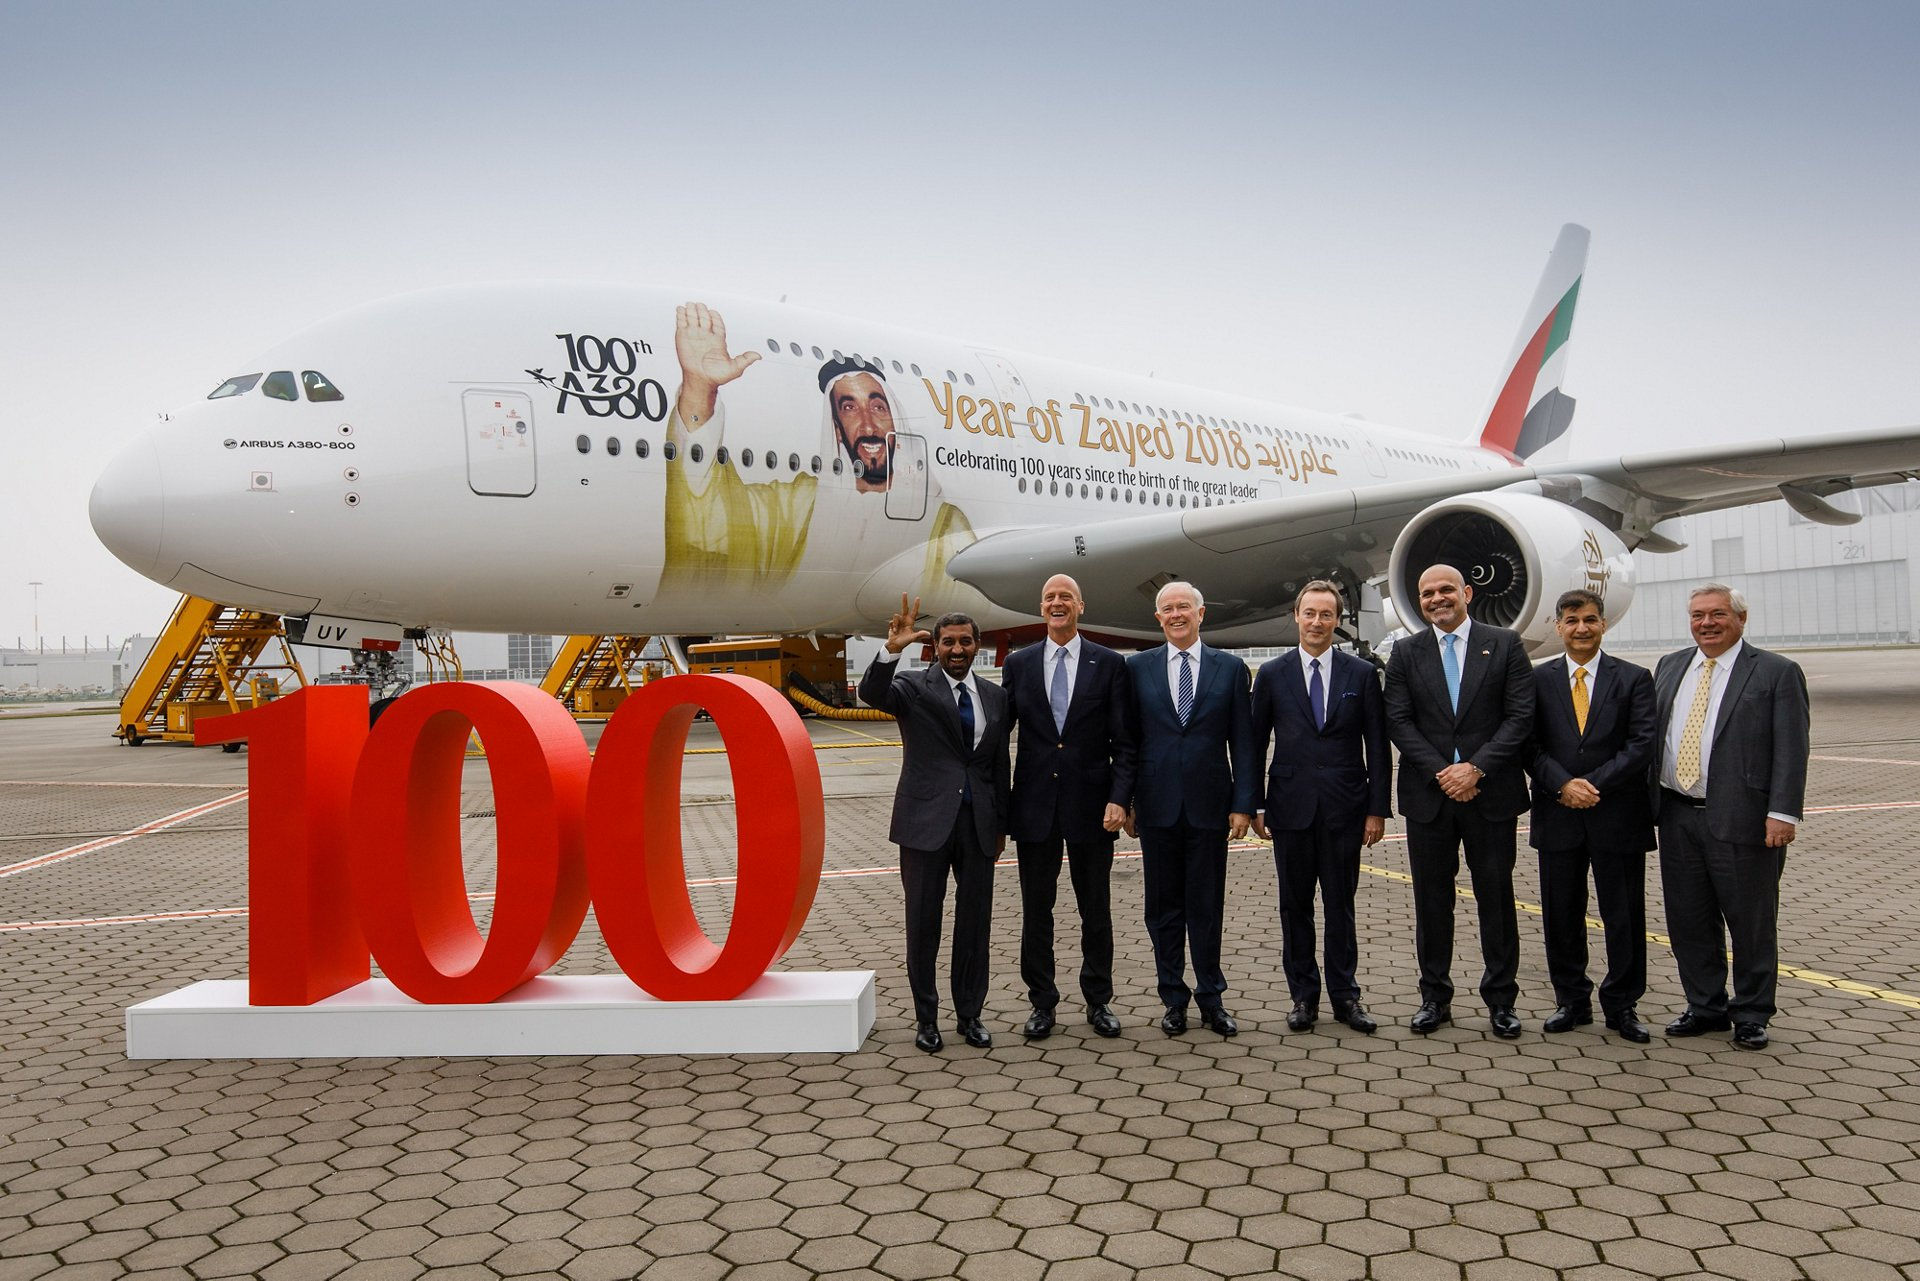 Emirates welcomes 100th A380 to its fleet celebrating milestone delivery in Hamburg